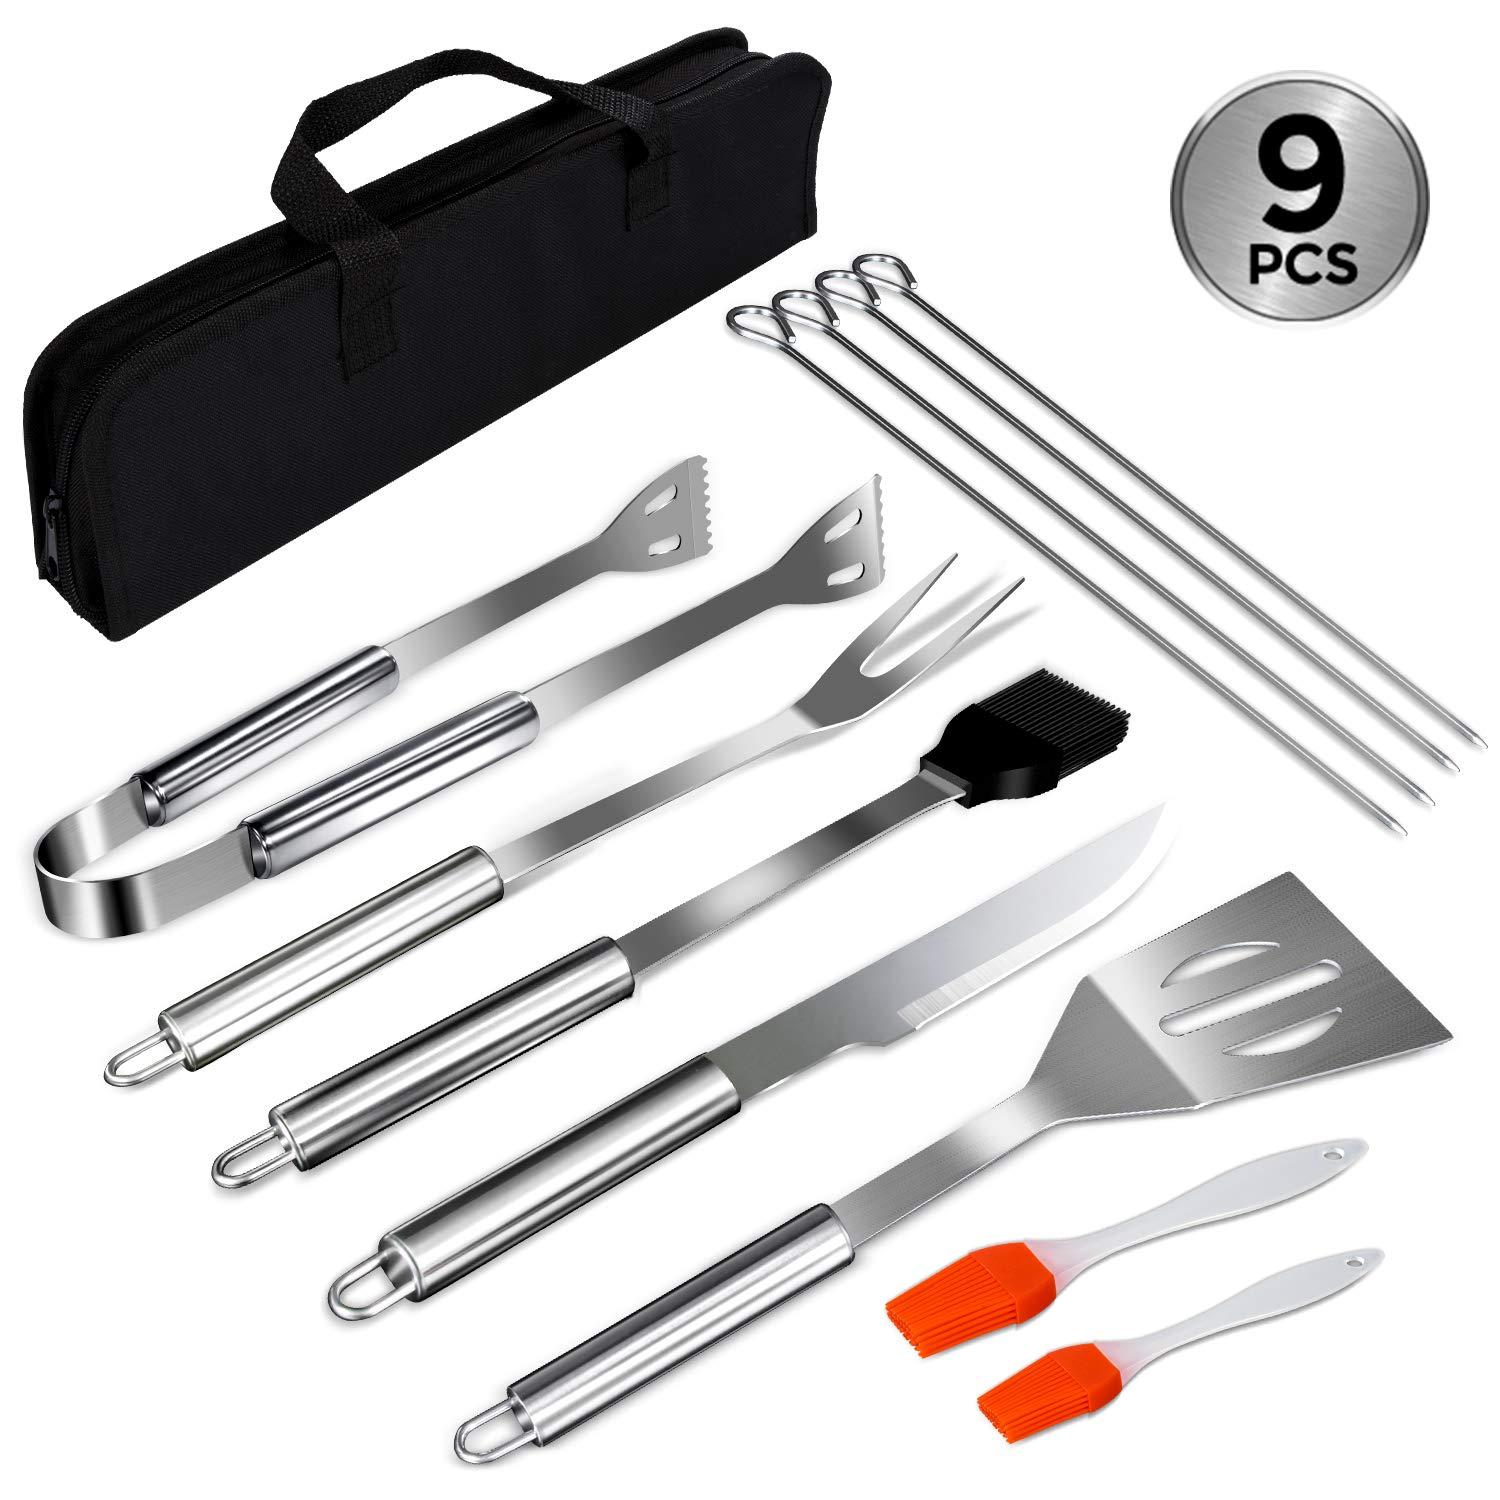 Mastertop 9Pcs Multi Purpose Stainless-Steel BBQ Tools Set with Storage Bag Spatula, Fork, Tongs,Knife, 4 Pcs Skewers,Stainless Steel Basting Brush and 2 Pcs Extra Brush As Gift